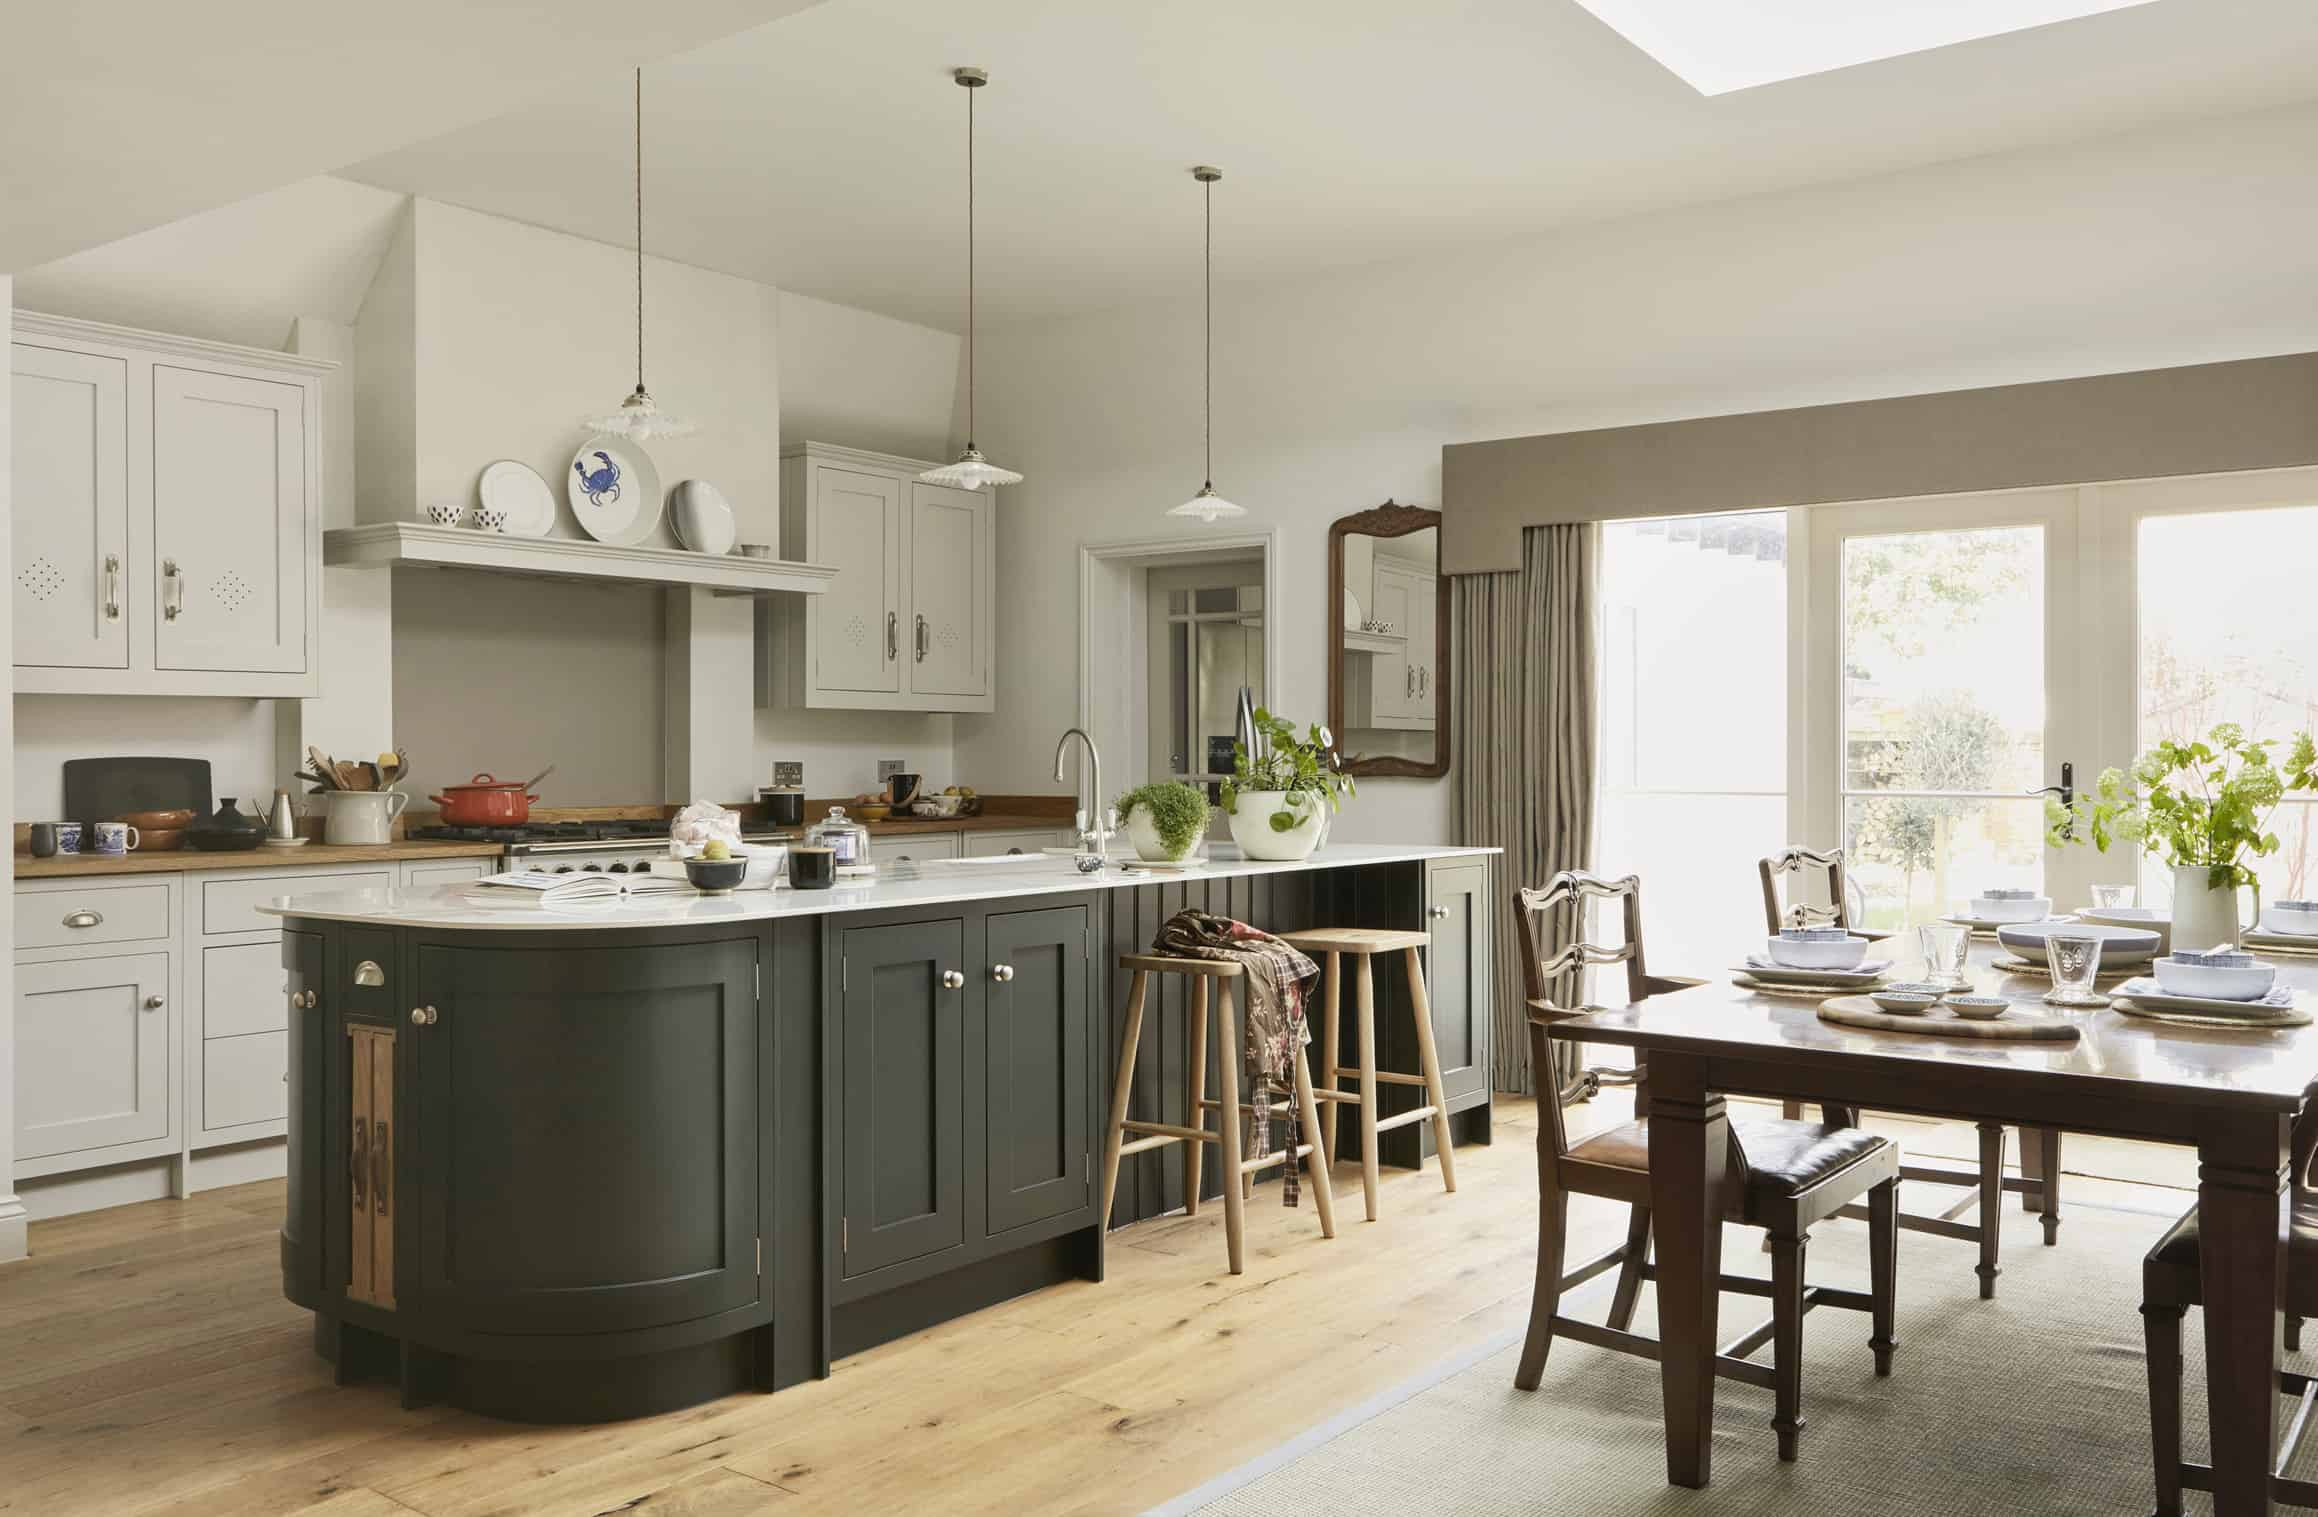 Rustic traditional kitchen island John Lewis of Hungerford